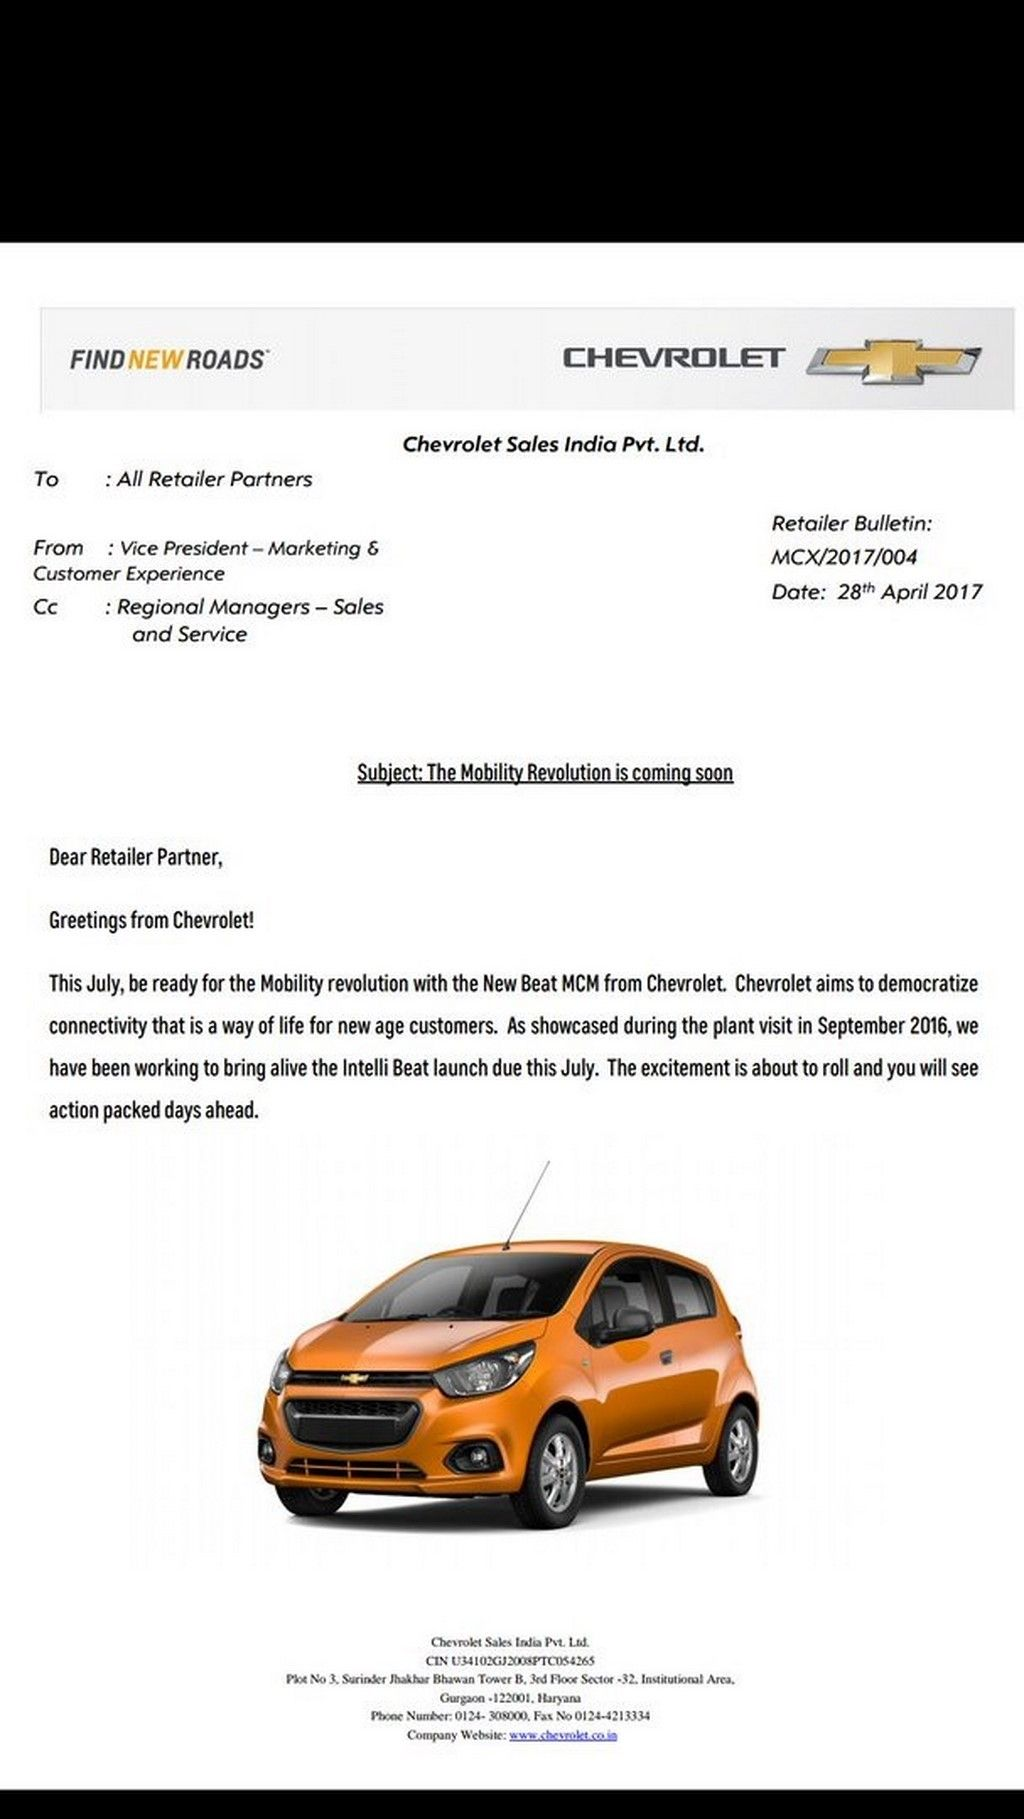 2017 Chevrolet Beat Launch In July 2017 In India Chevrolet